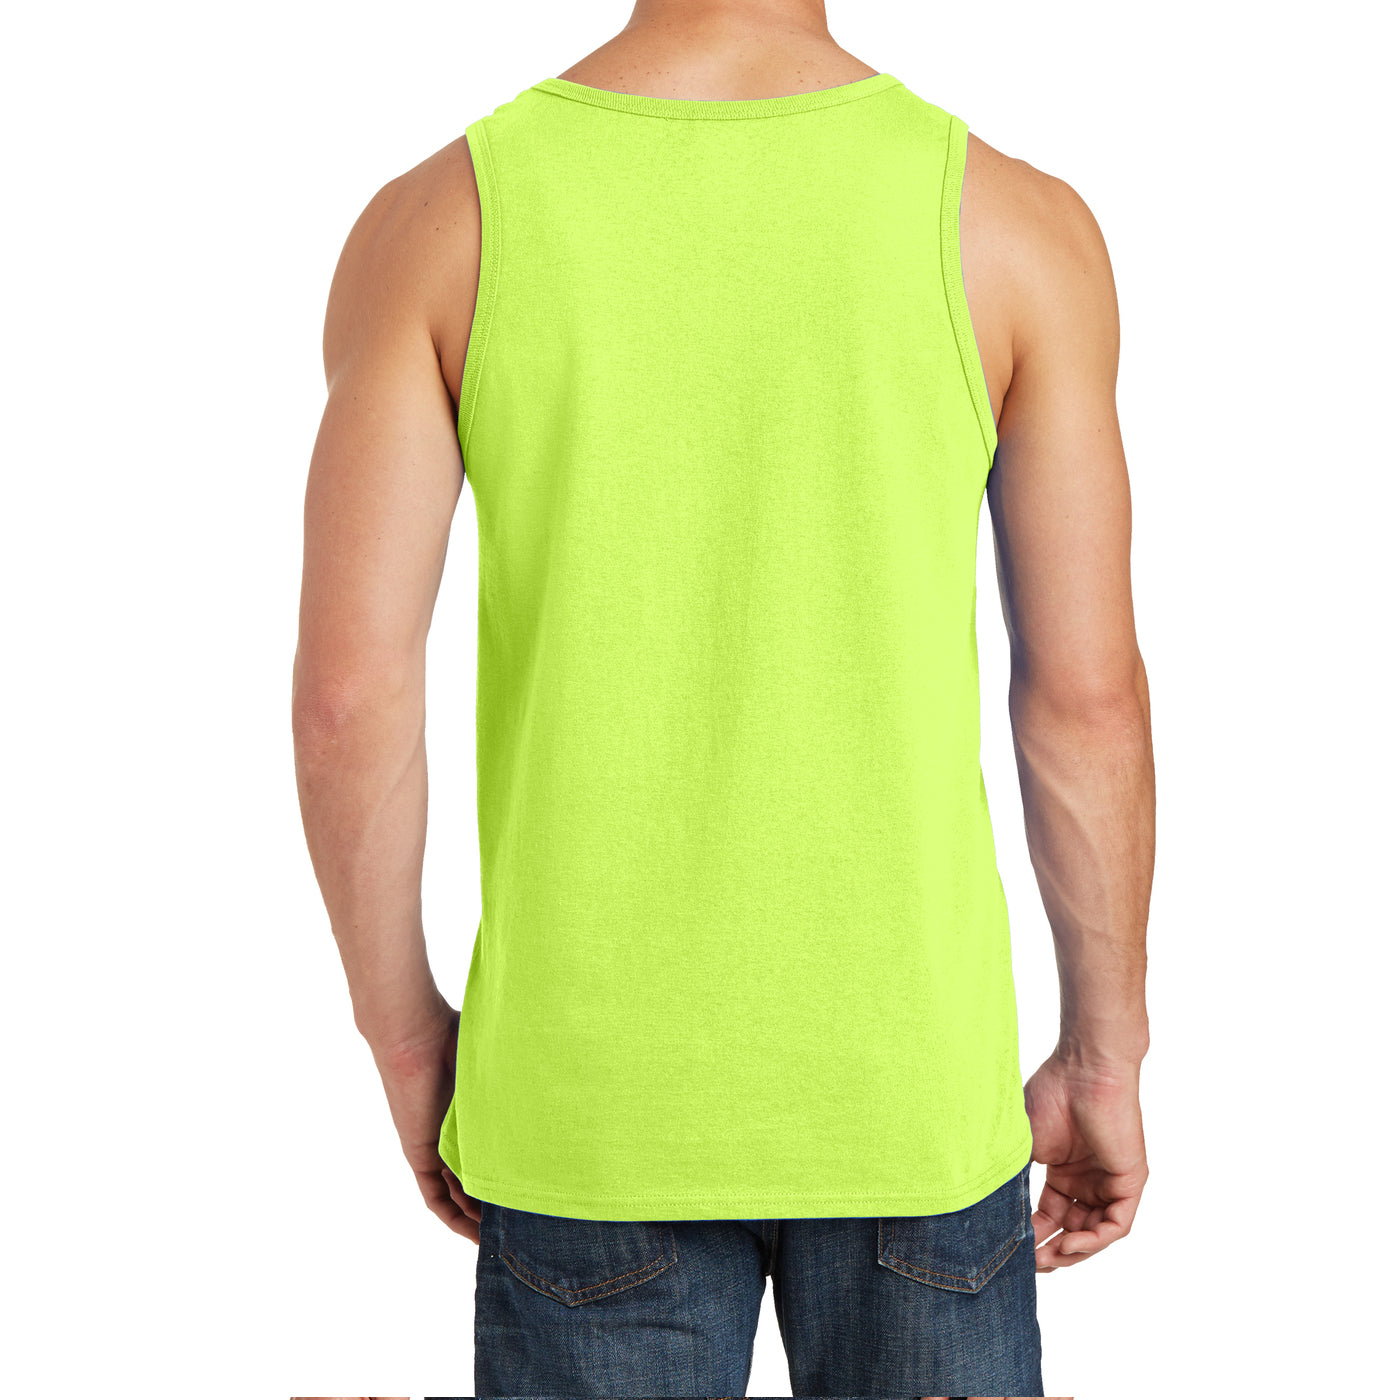 Men's Core Cotton Tank Top - Neon Yellow - Back